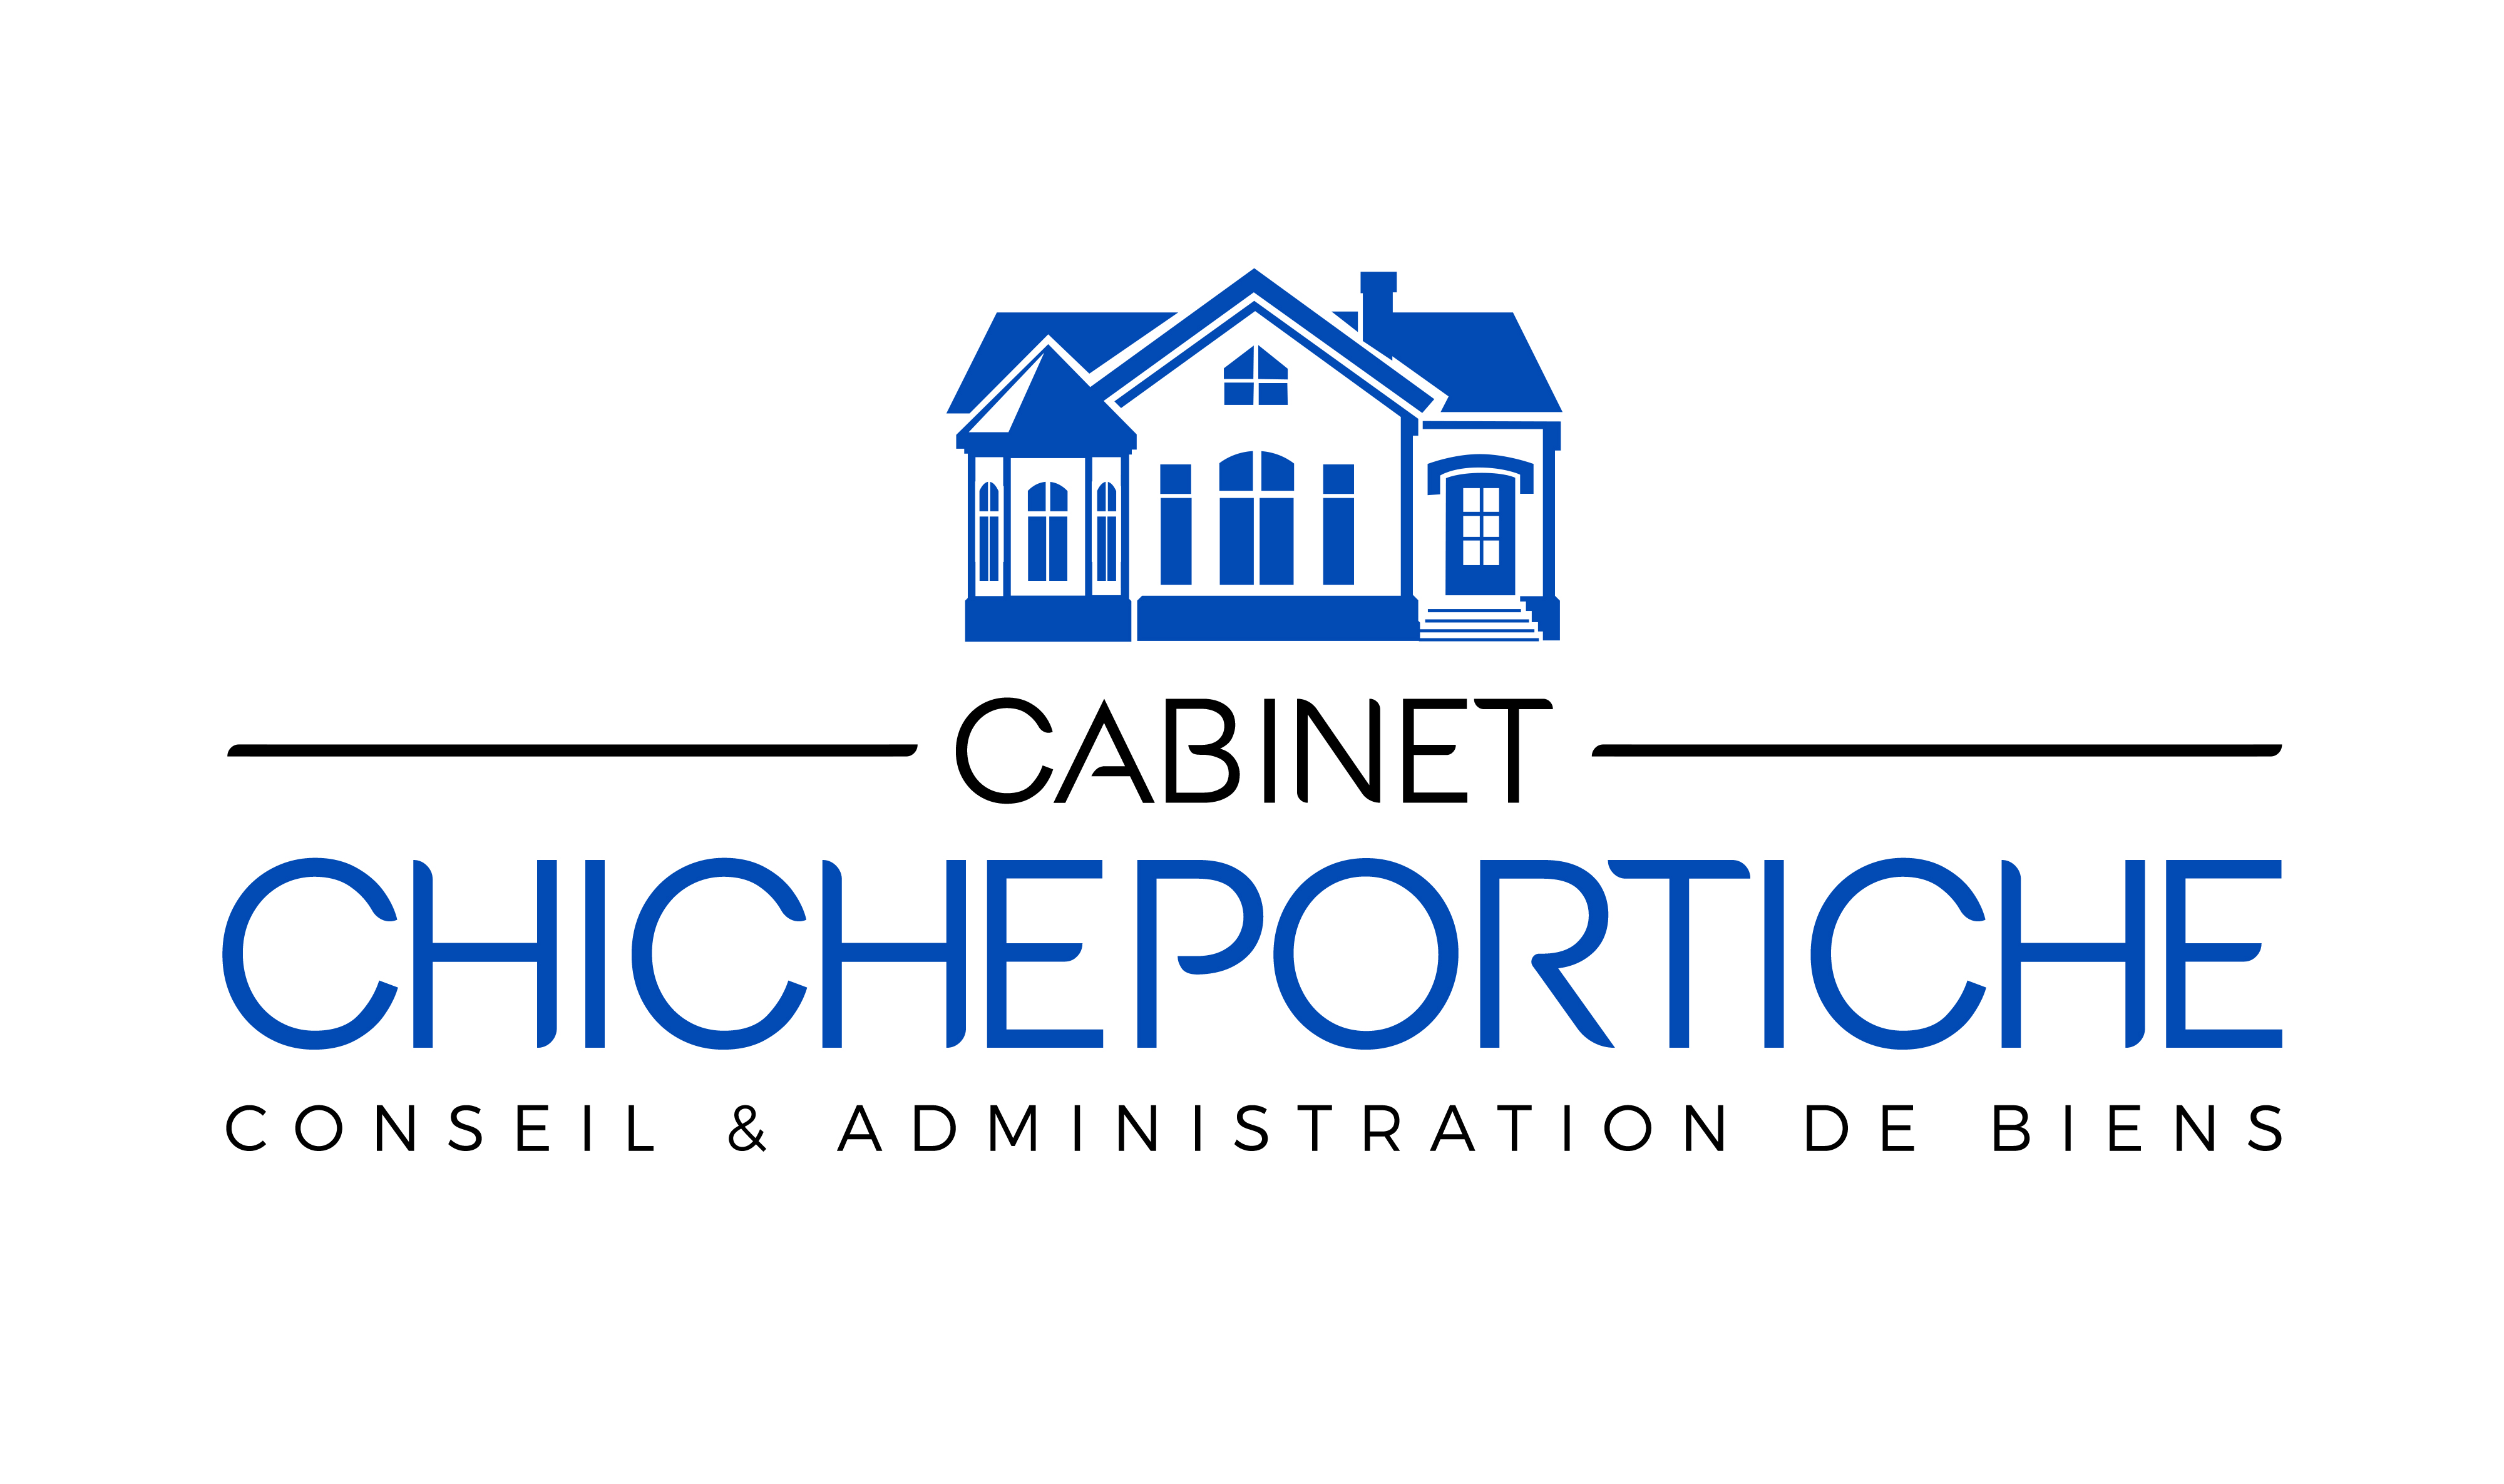 Cabinet Chicheportiche agence immobilière Montreuil (93100)